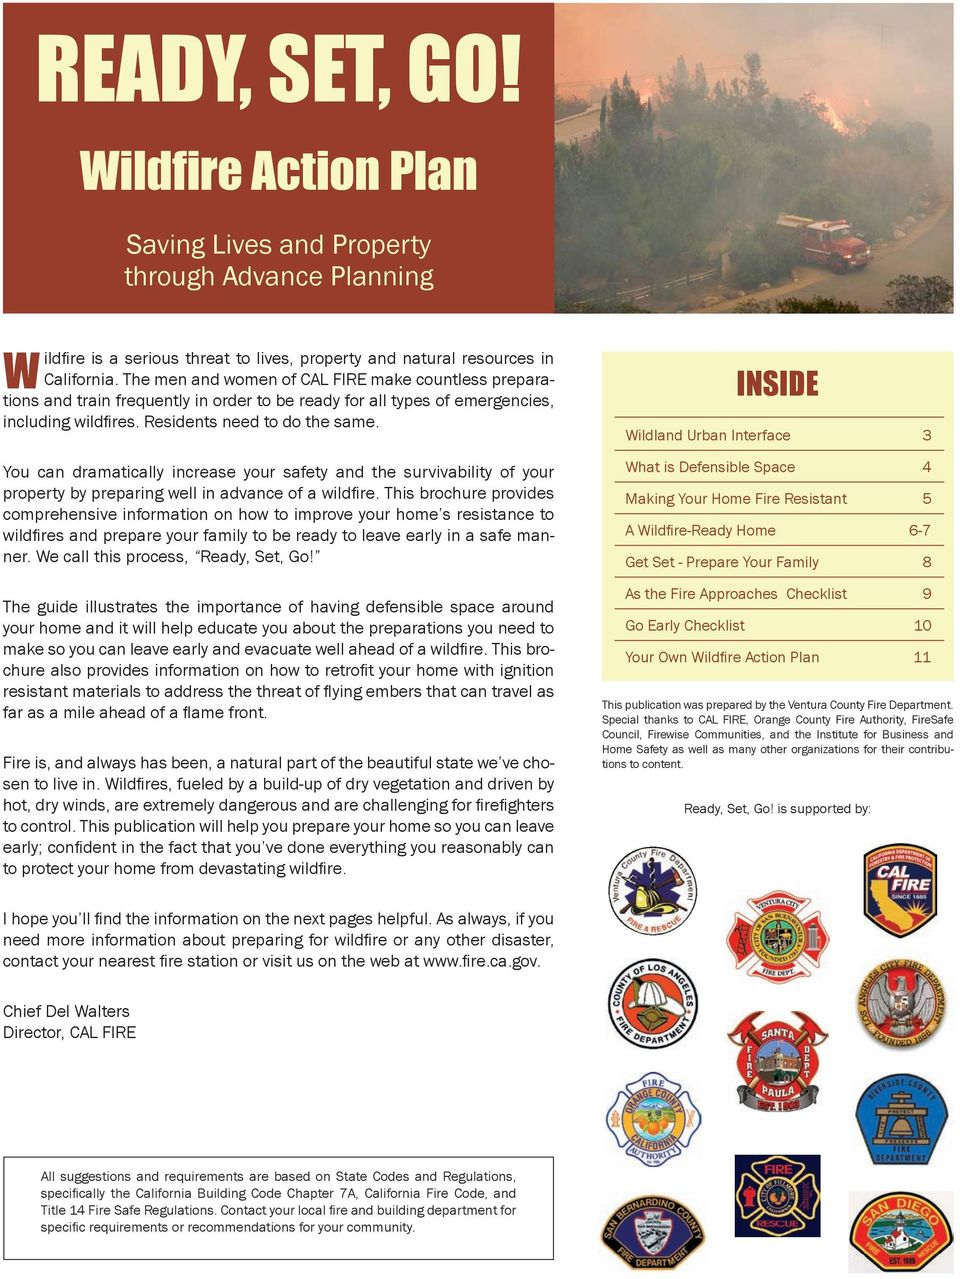 You can dramatically increase your safety and the survivability of your property by preparing well in advance of a wildfire.